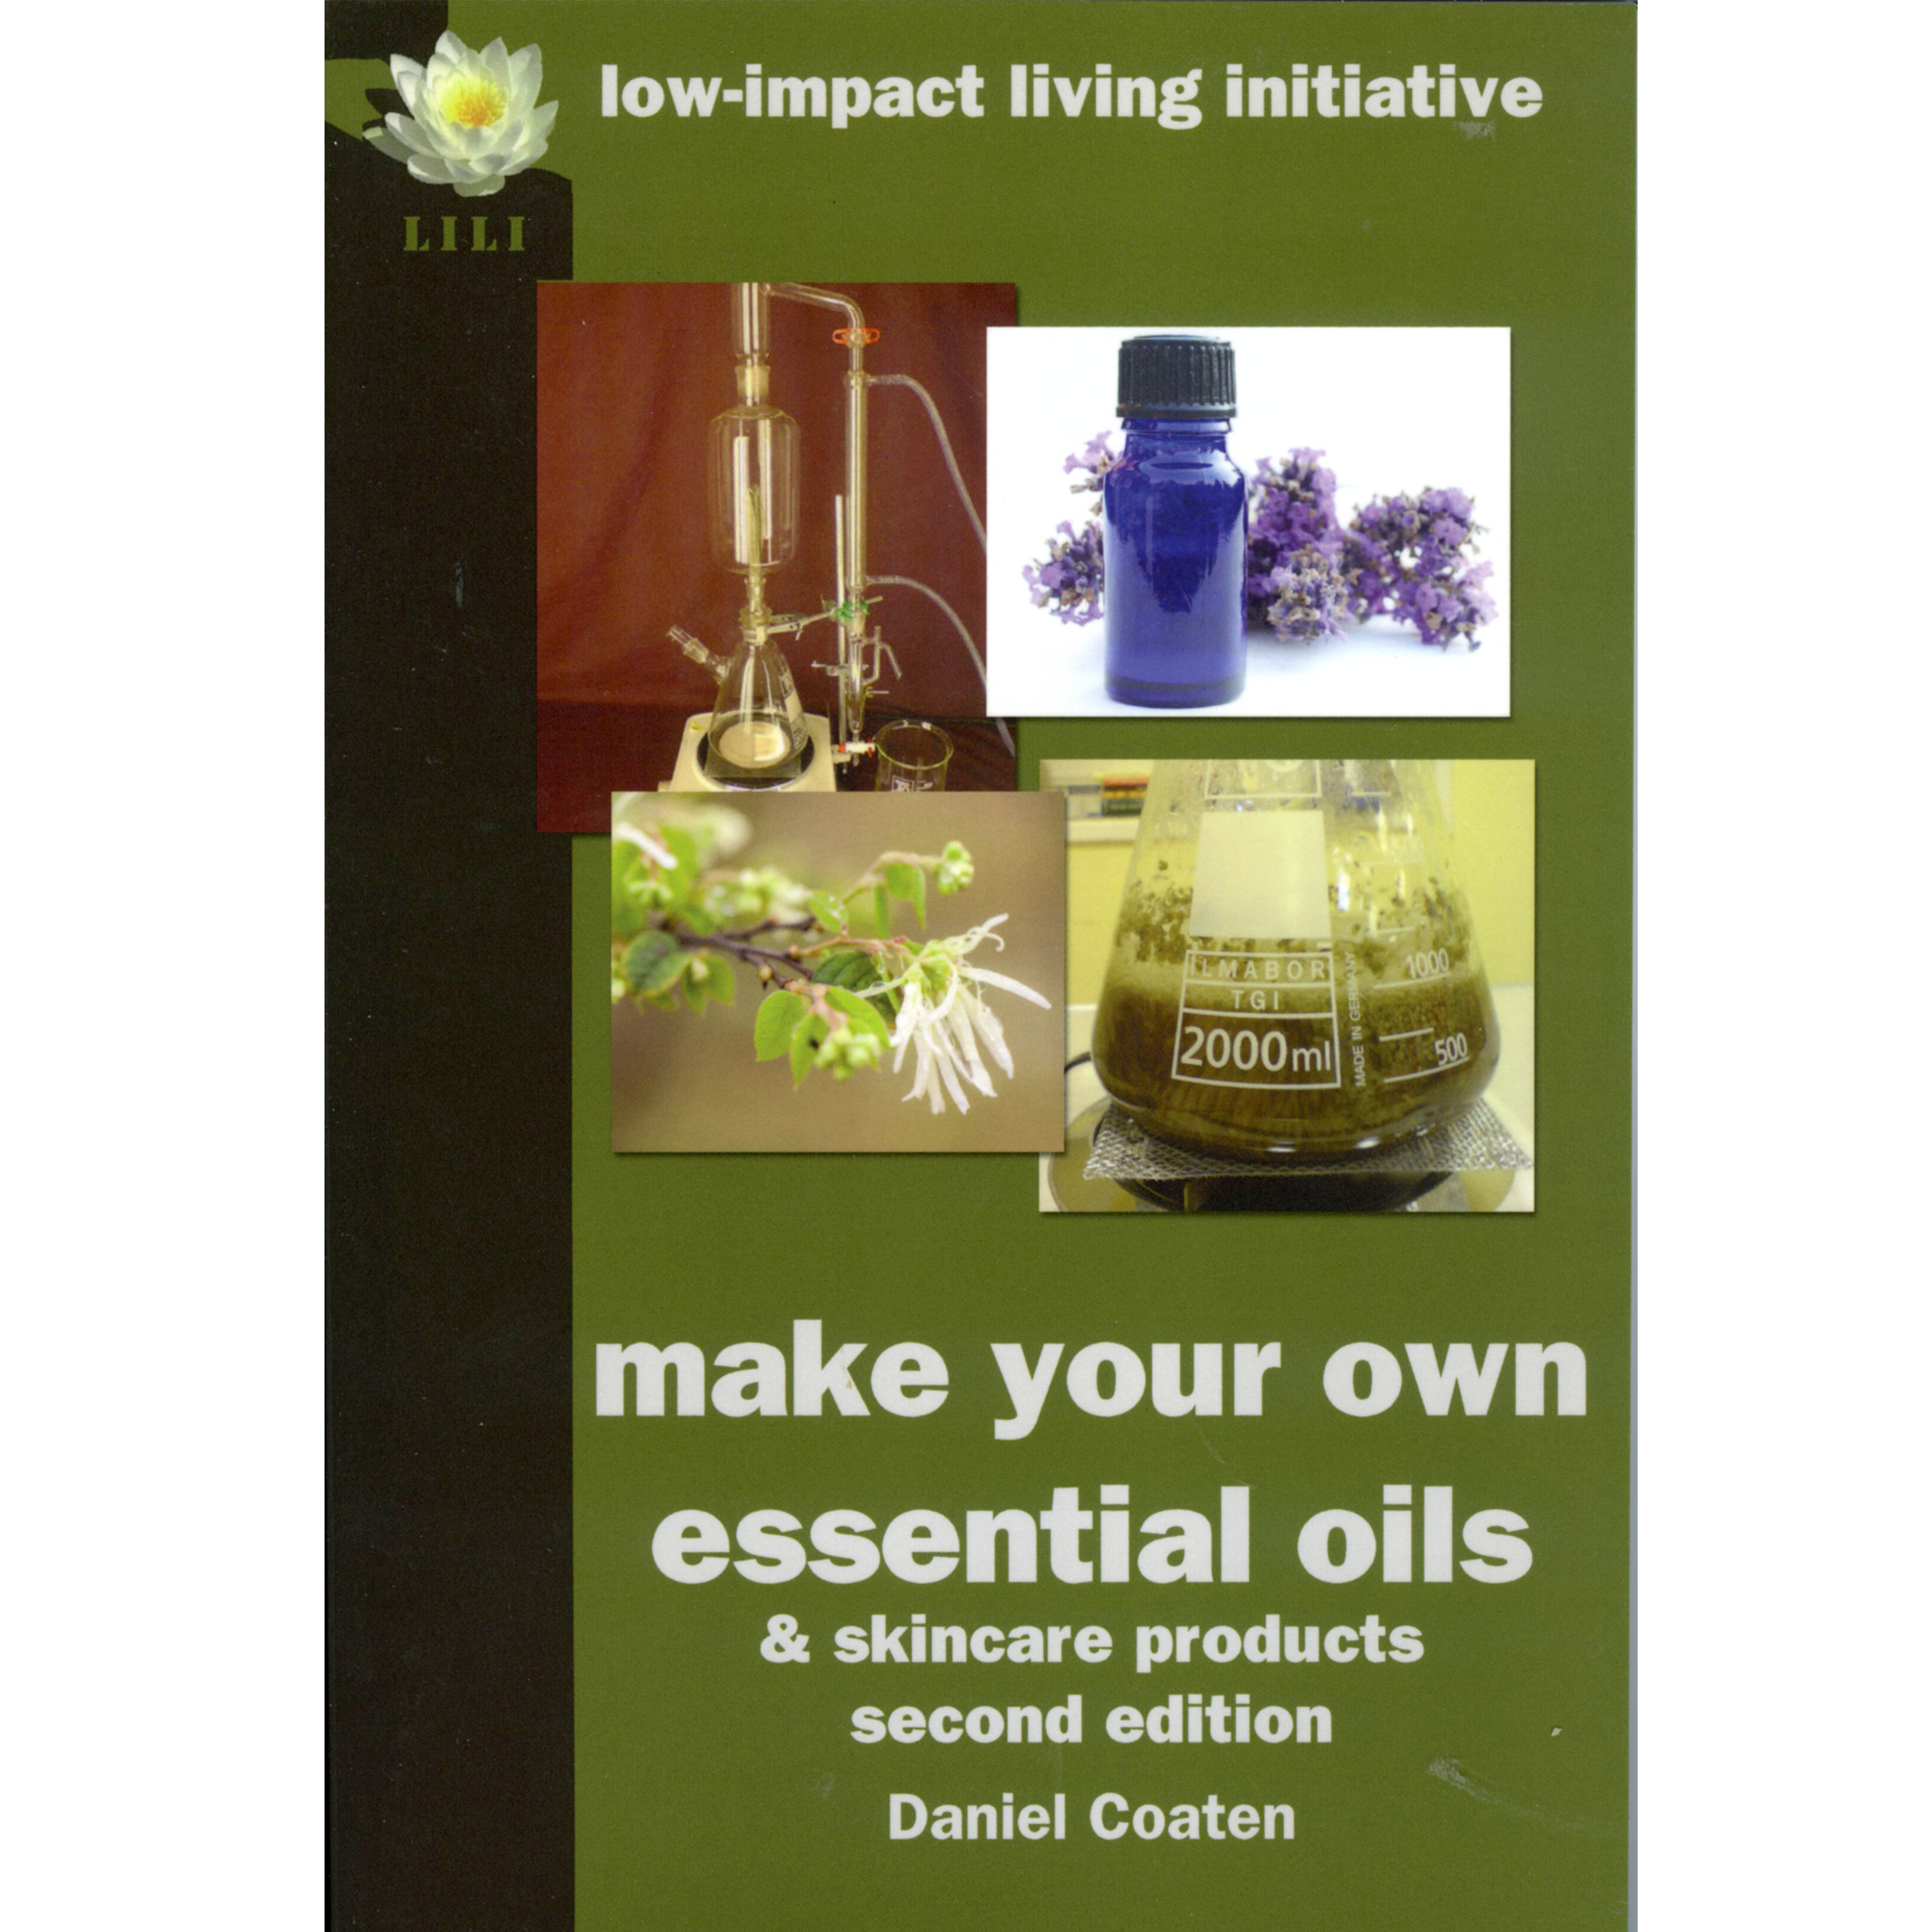 Make your own essential oils & skin-care products